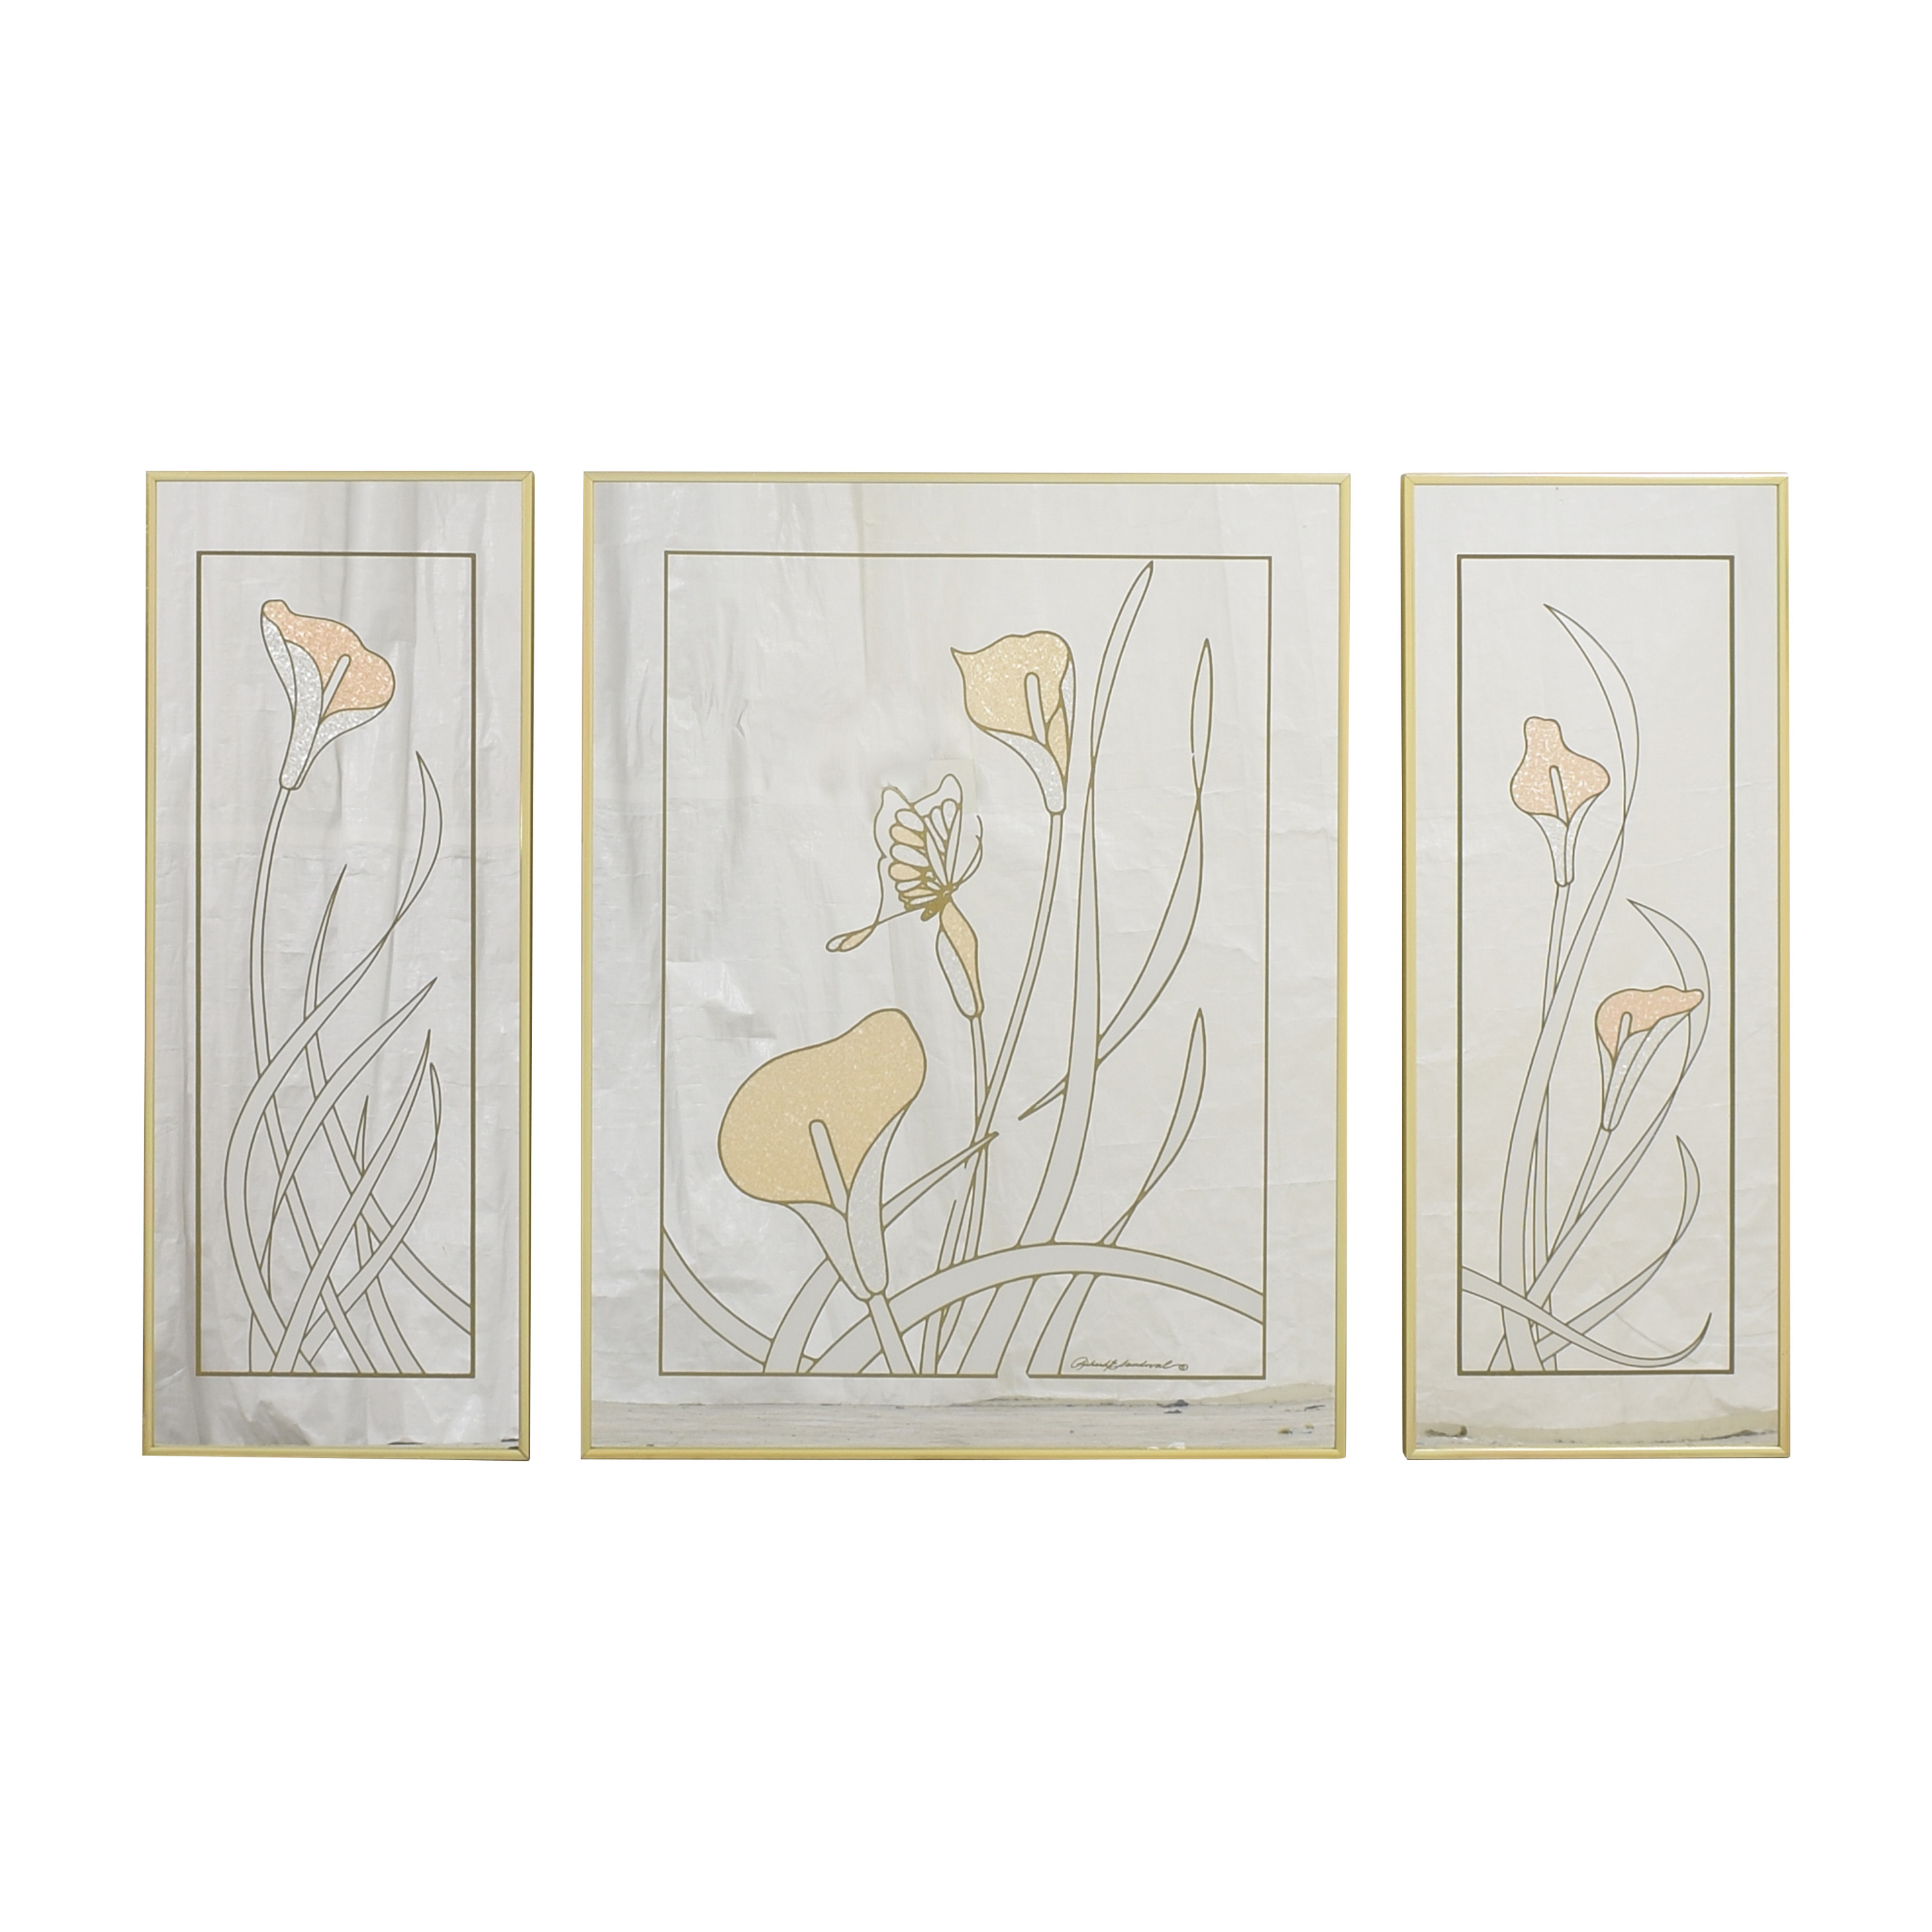 Richard E. Sandoval Decorative Mirror Triptych price